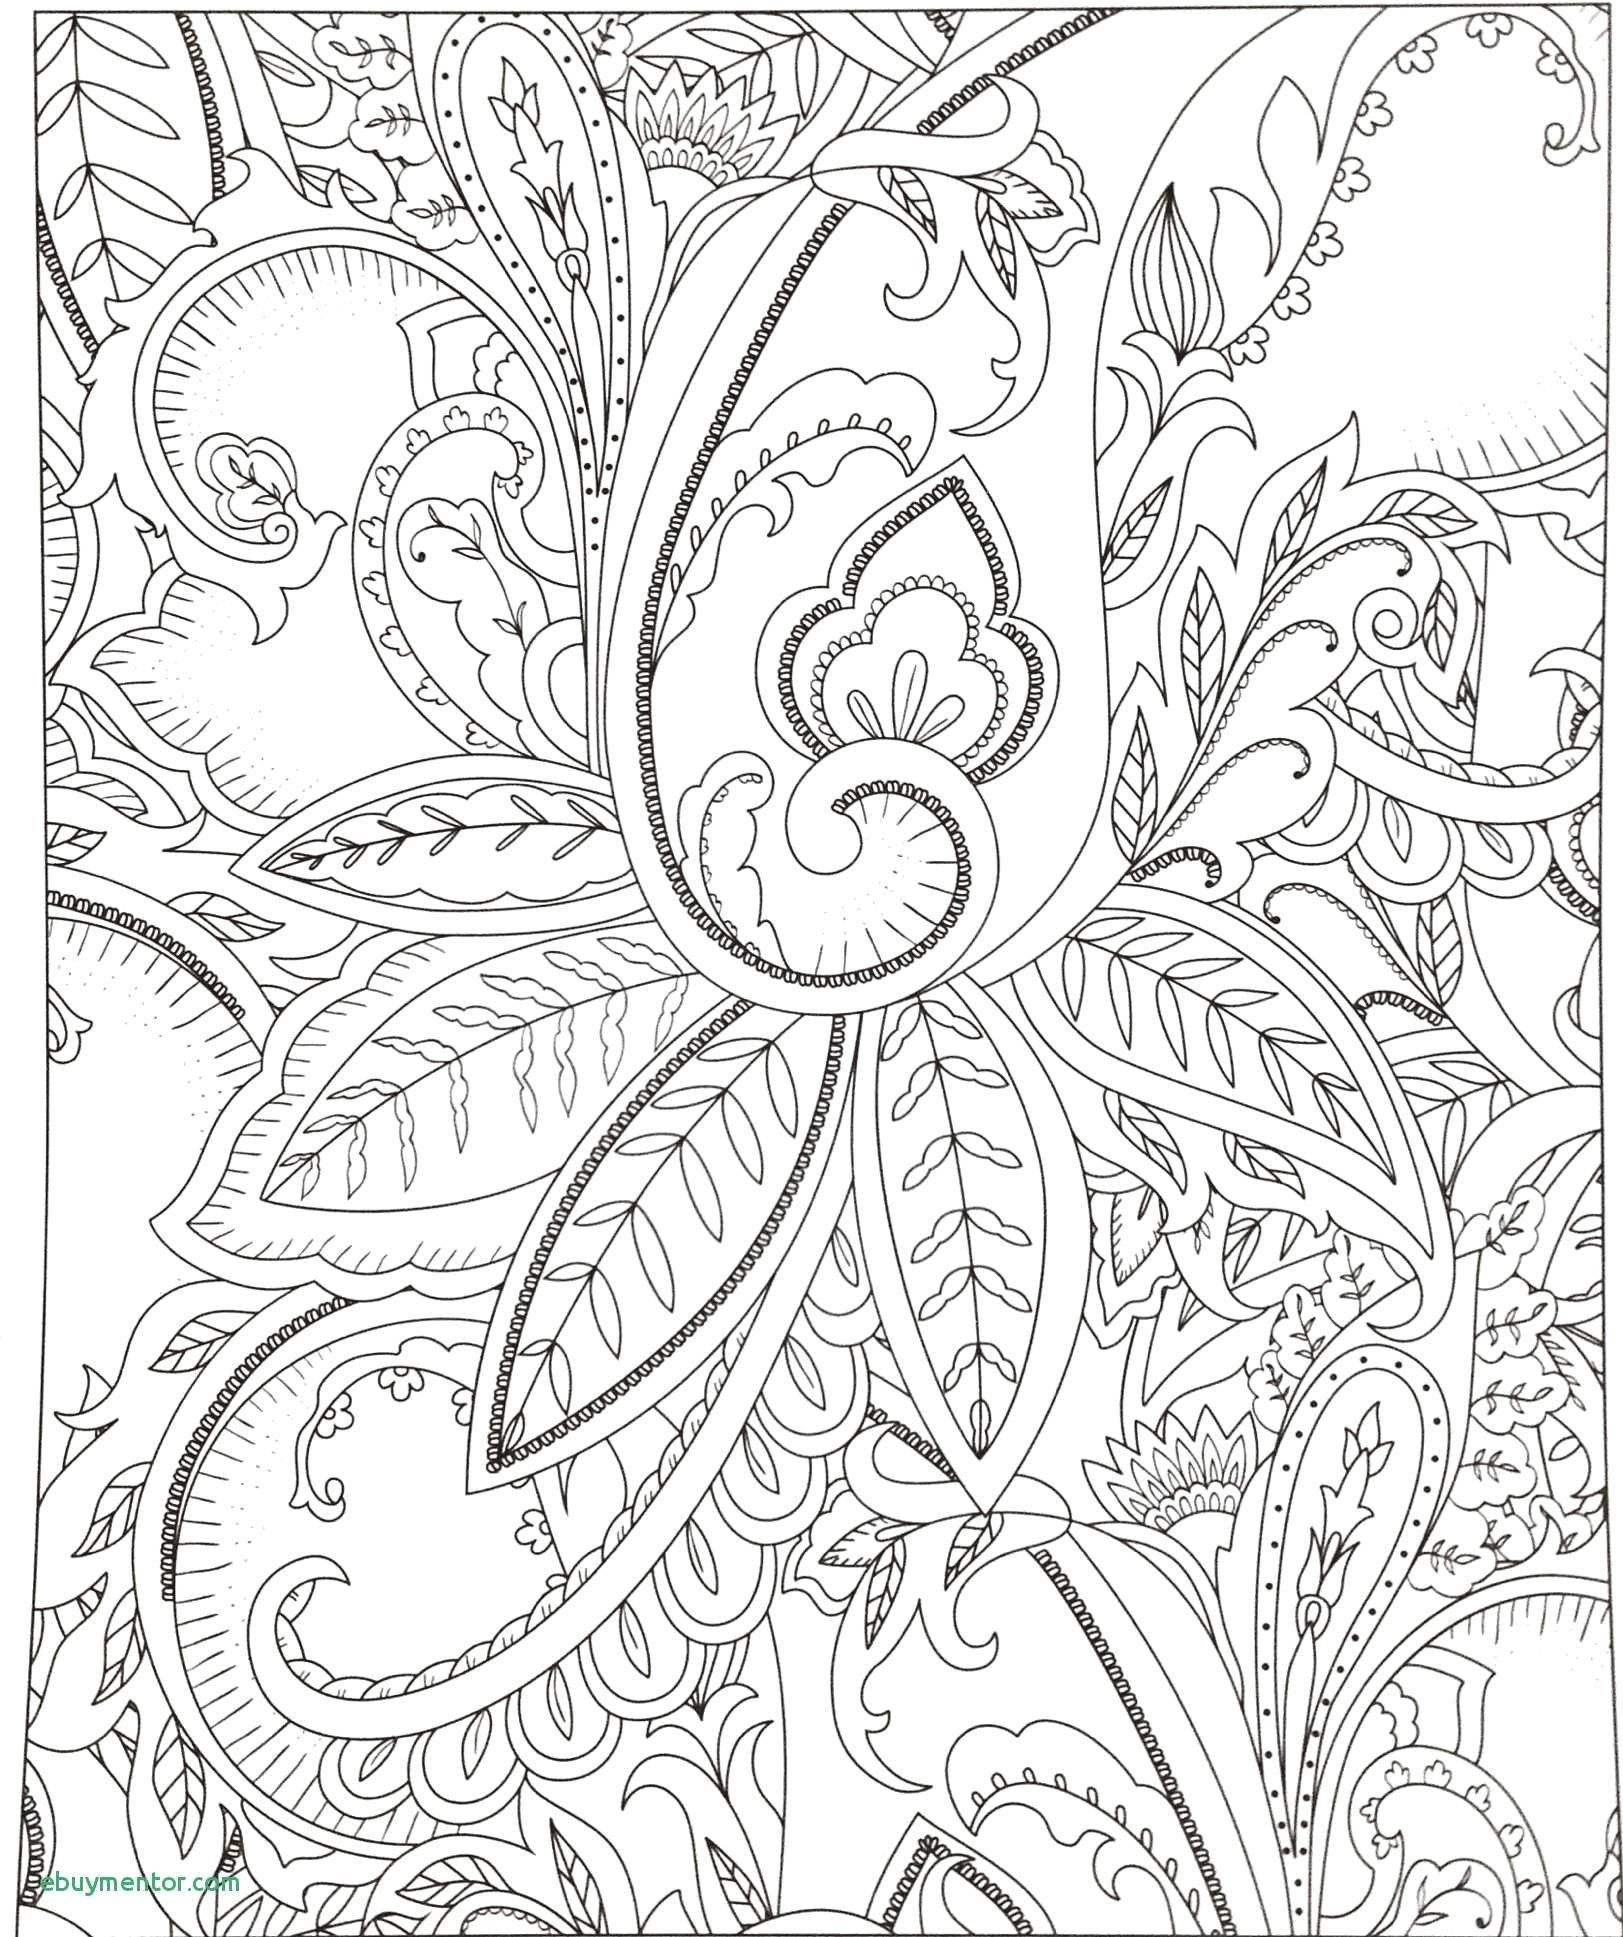 Millie Marotta Coloring Book Luxury Coloring Pages 46 Amazon Rainforest Coloring Pages Unicorn Coloring Pages Spring Coloring Pages Cool Coloring Pages